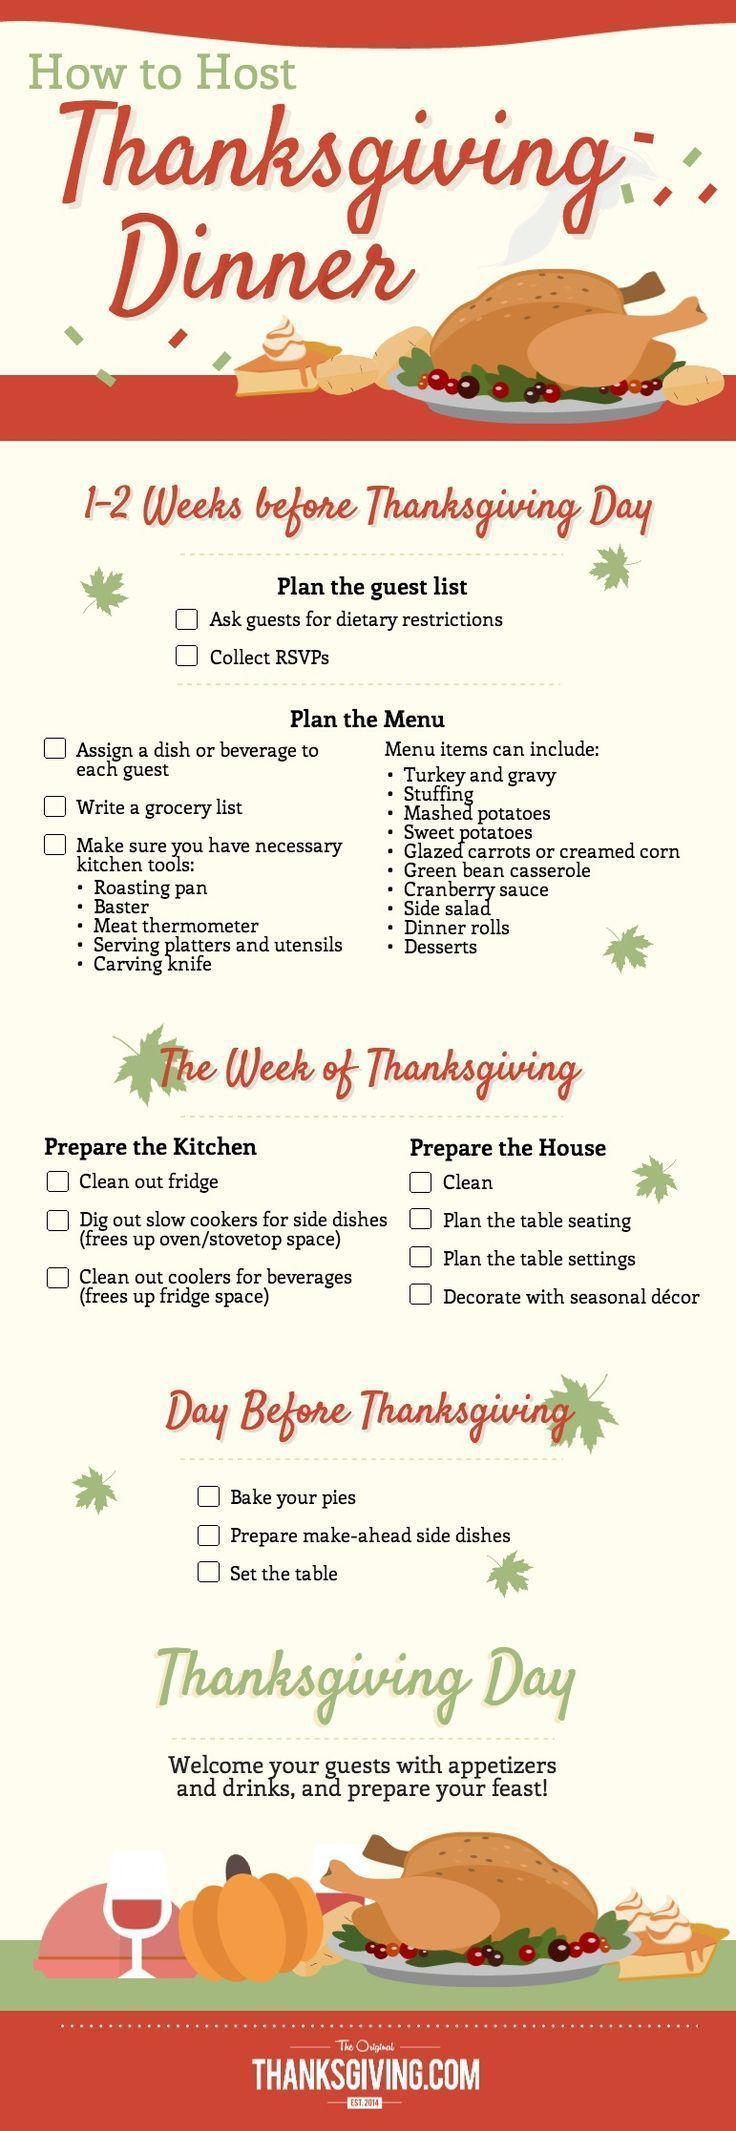 How to Host Thanksgiving Dinner How to Host Thanksgiving Dinner